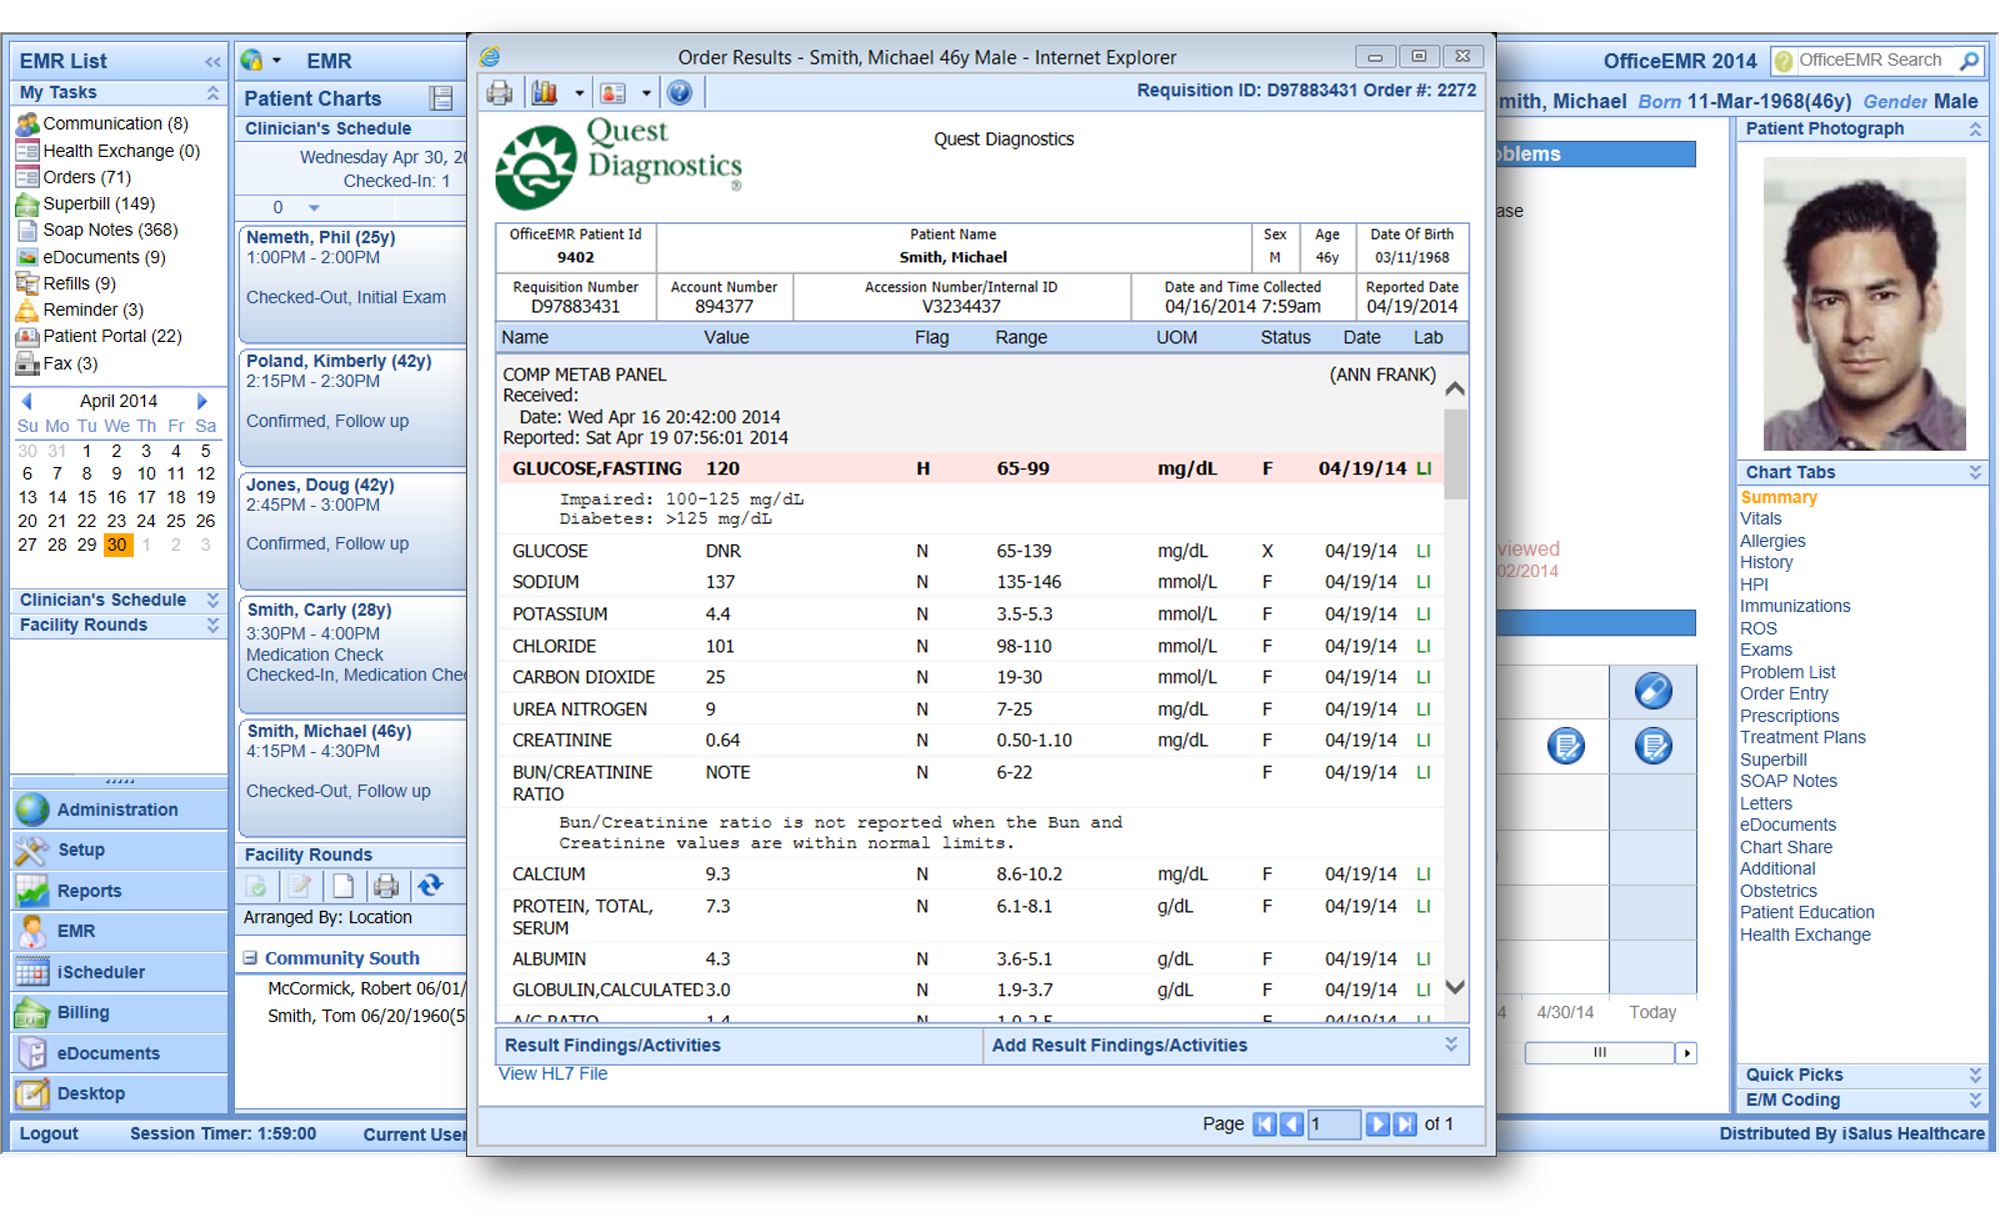 The EHS system includes lab entry and order results management